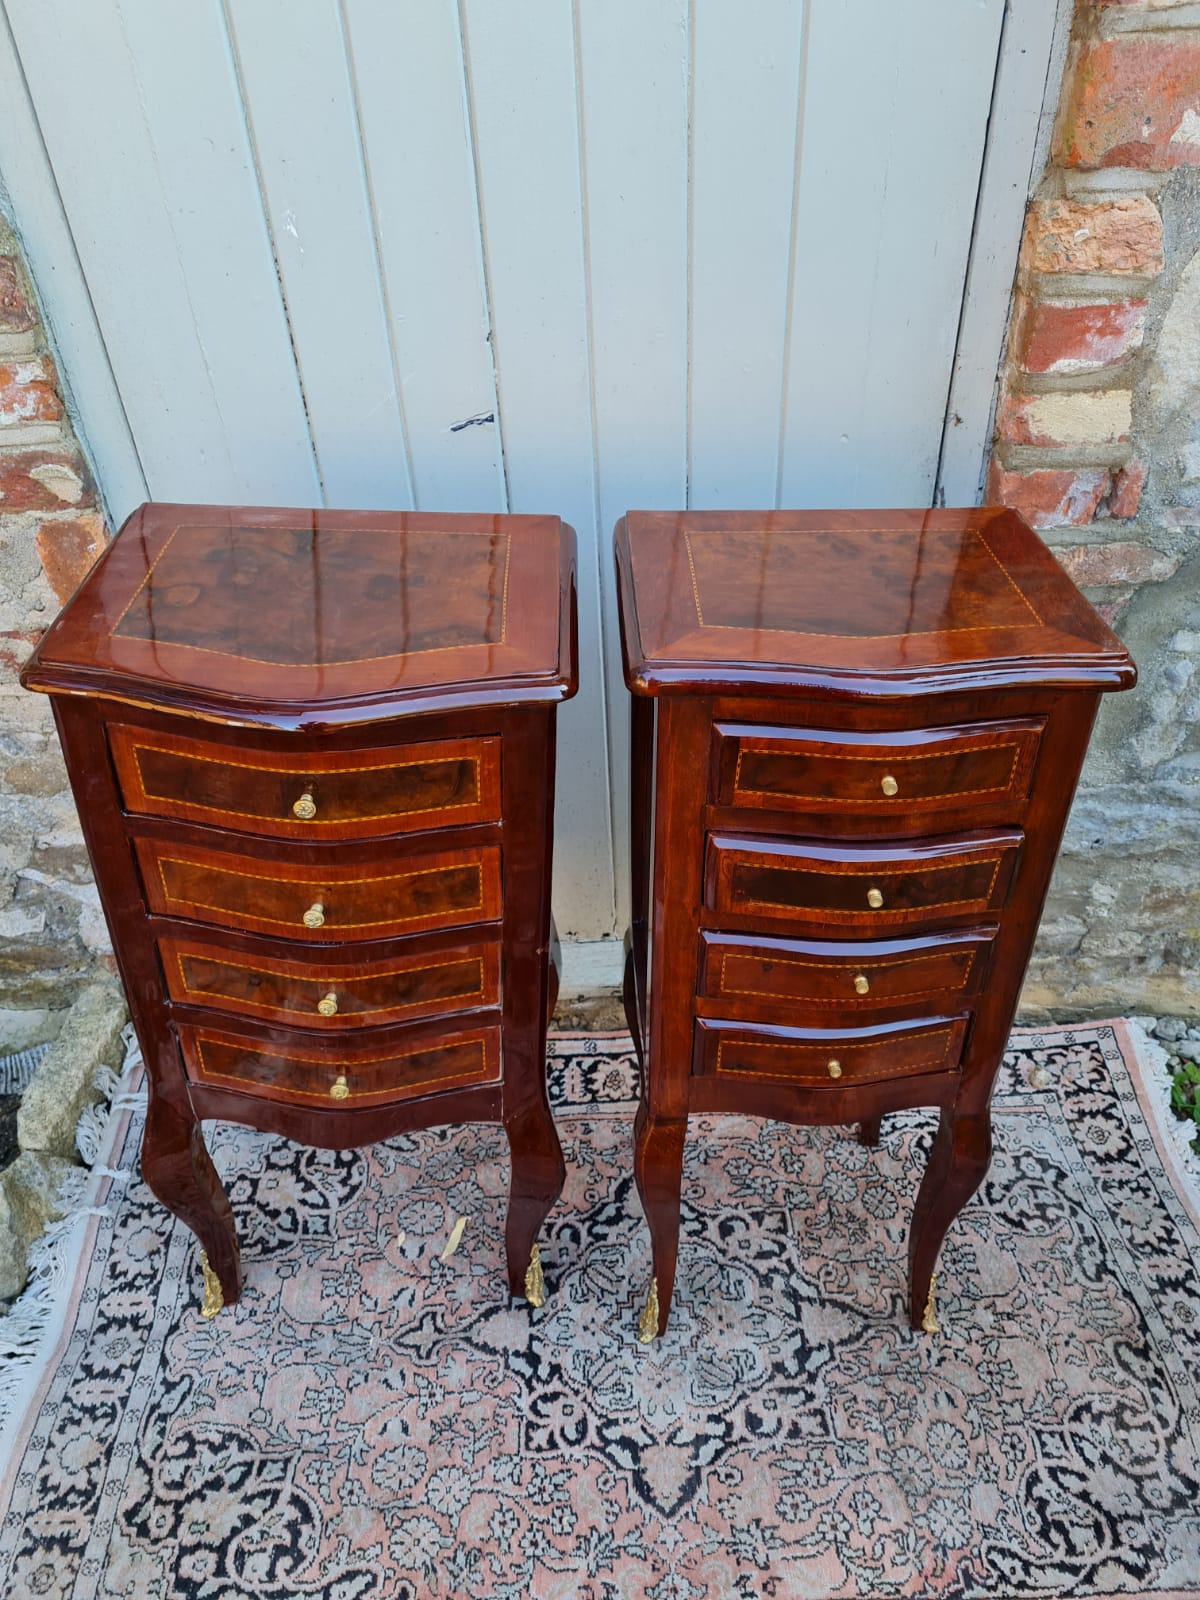 A PAIR OF CONTINENTAL LACQUERED WALNUT BOW FRONTED PEDESTAL CHESTS With four drawers, on cabriole - Image 2 of 2